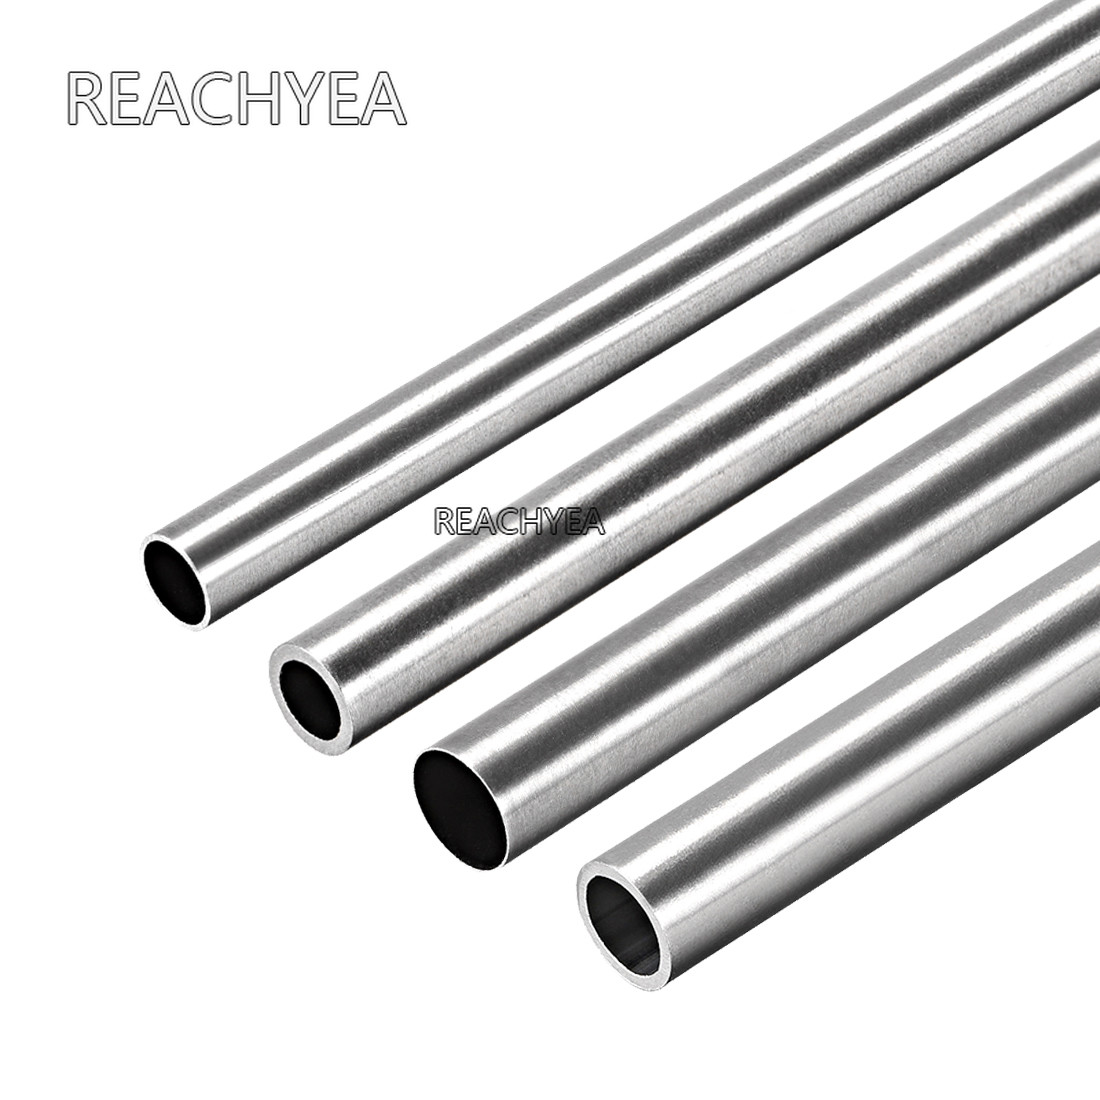 SS304 Stainless Steel  Straight Tubing Pipe 1.4mm OD X 0.1 Wall-length by order